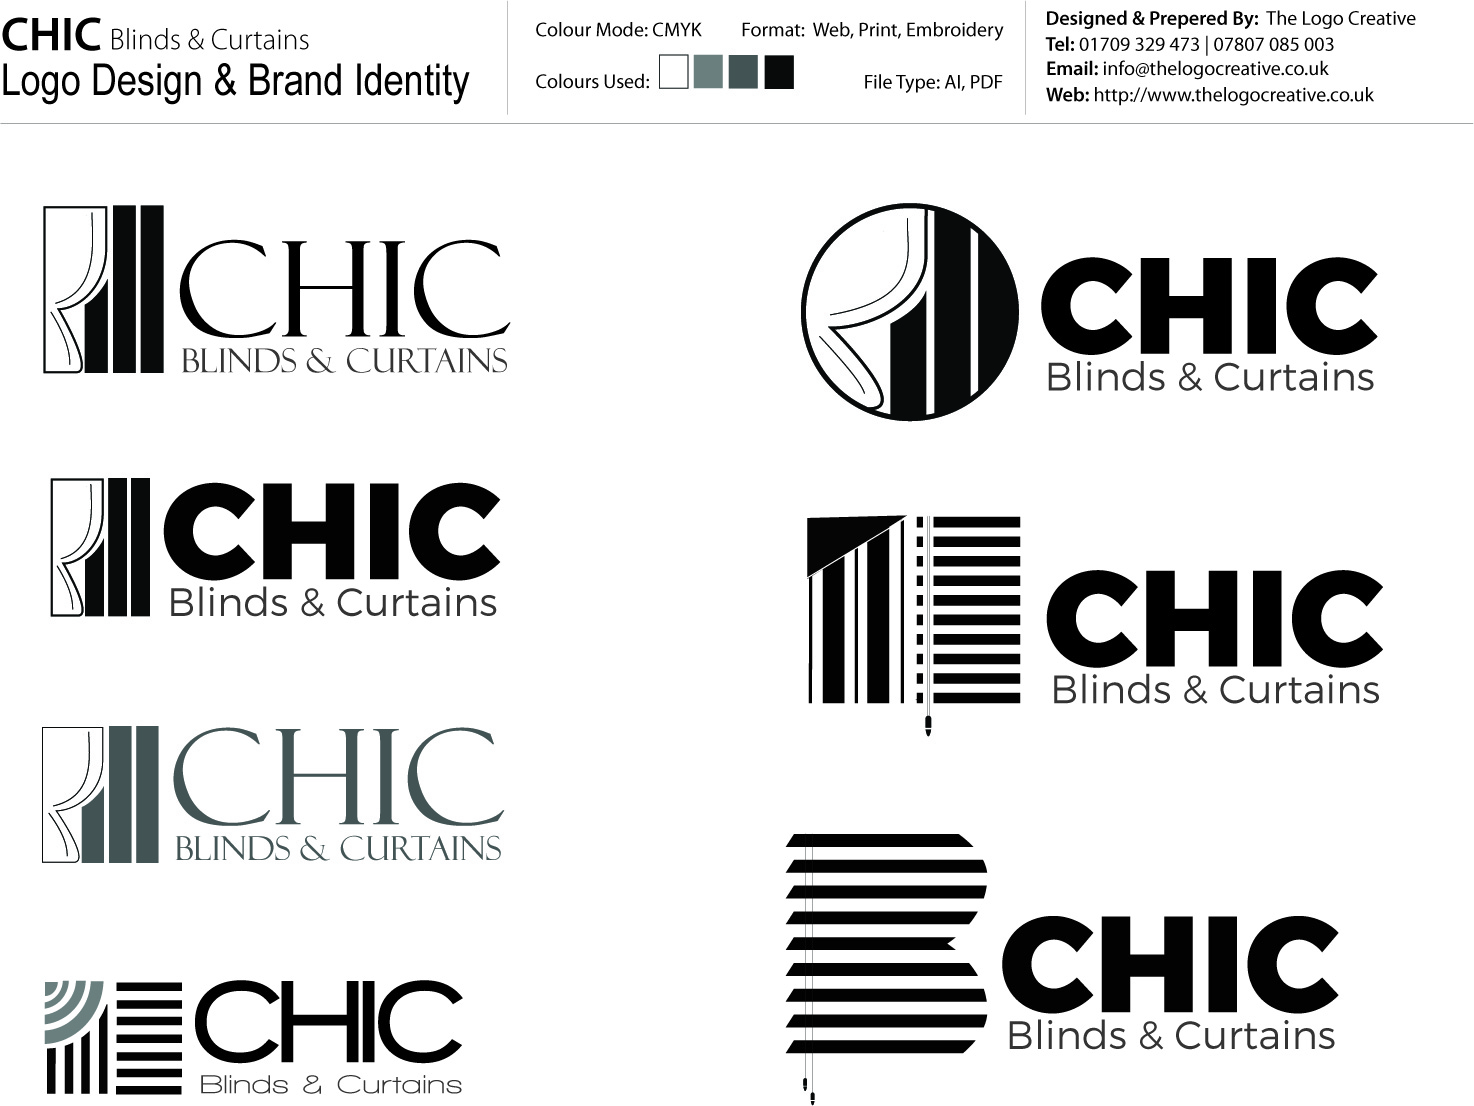 CHIC Blinds & Curtains Logo Design Master Display_TLC